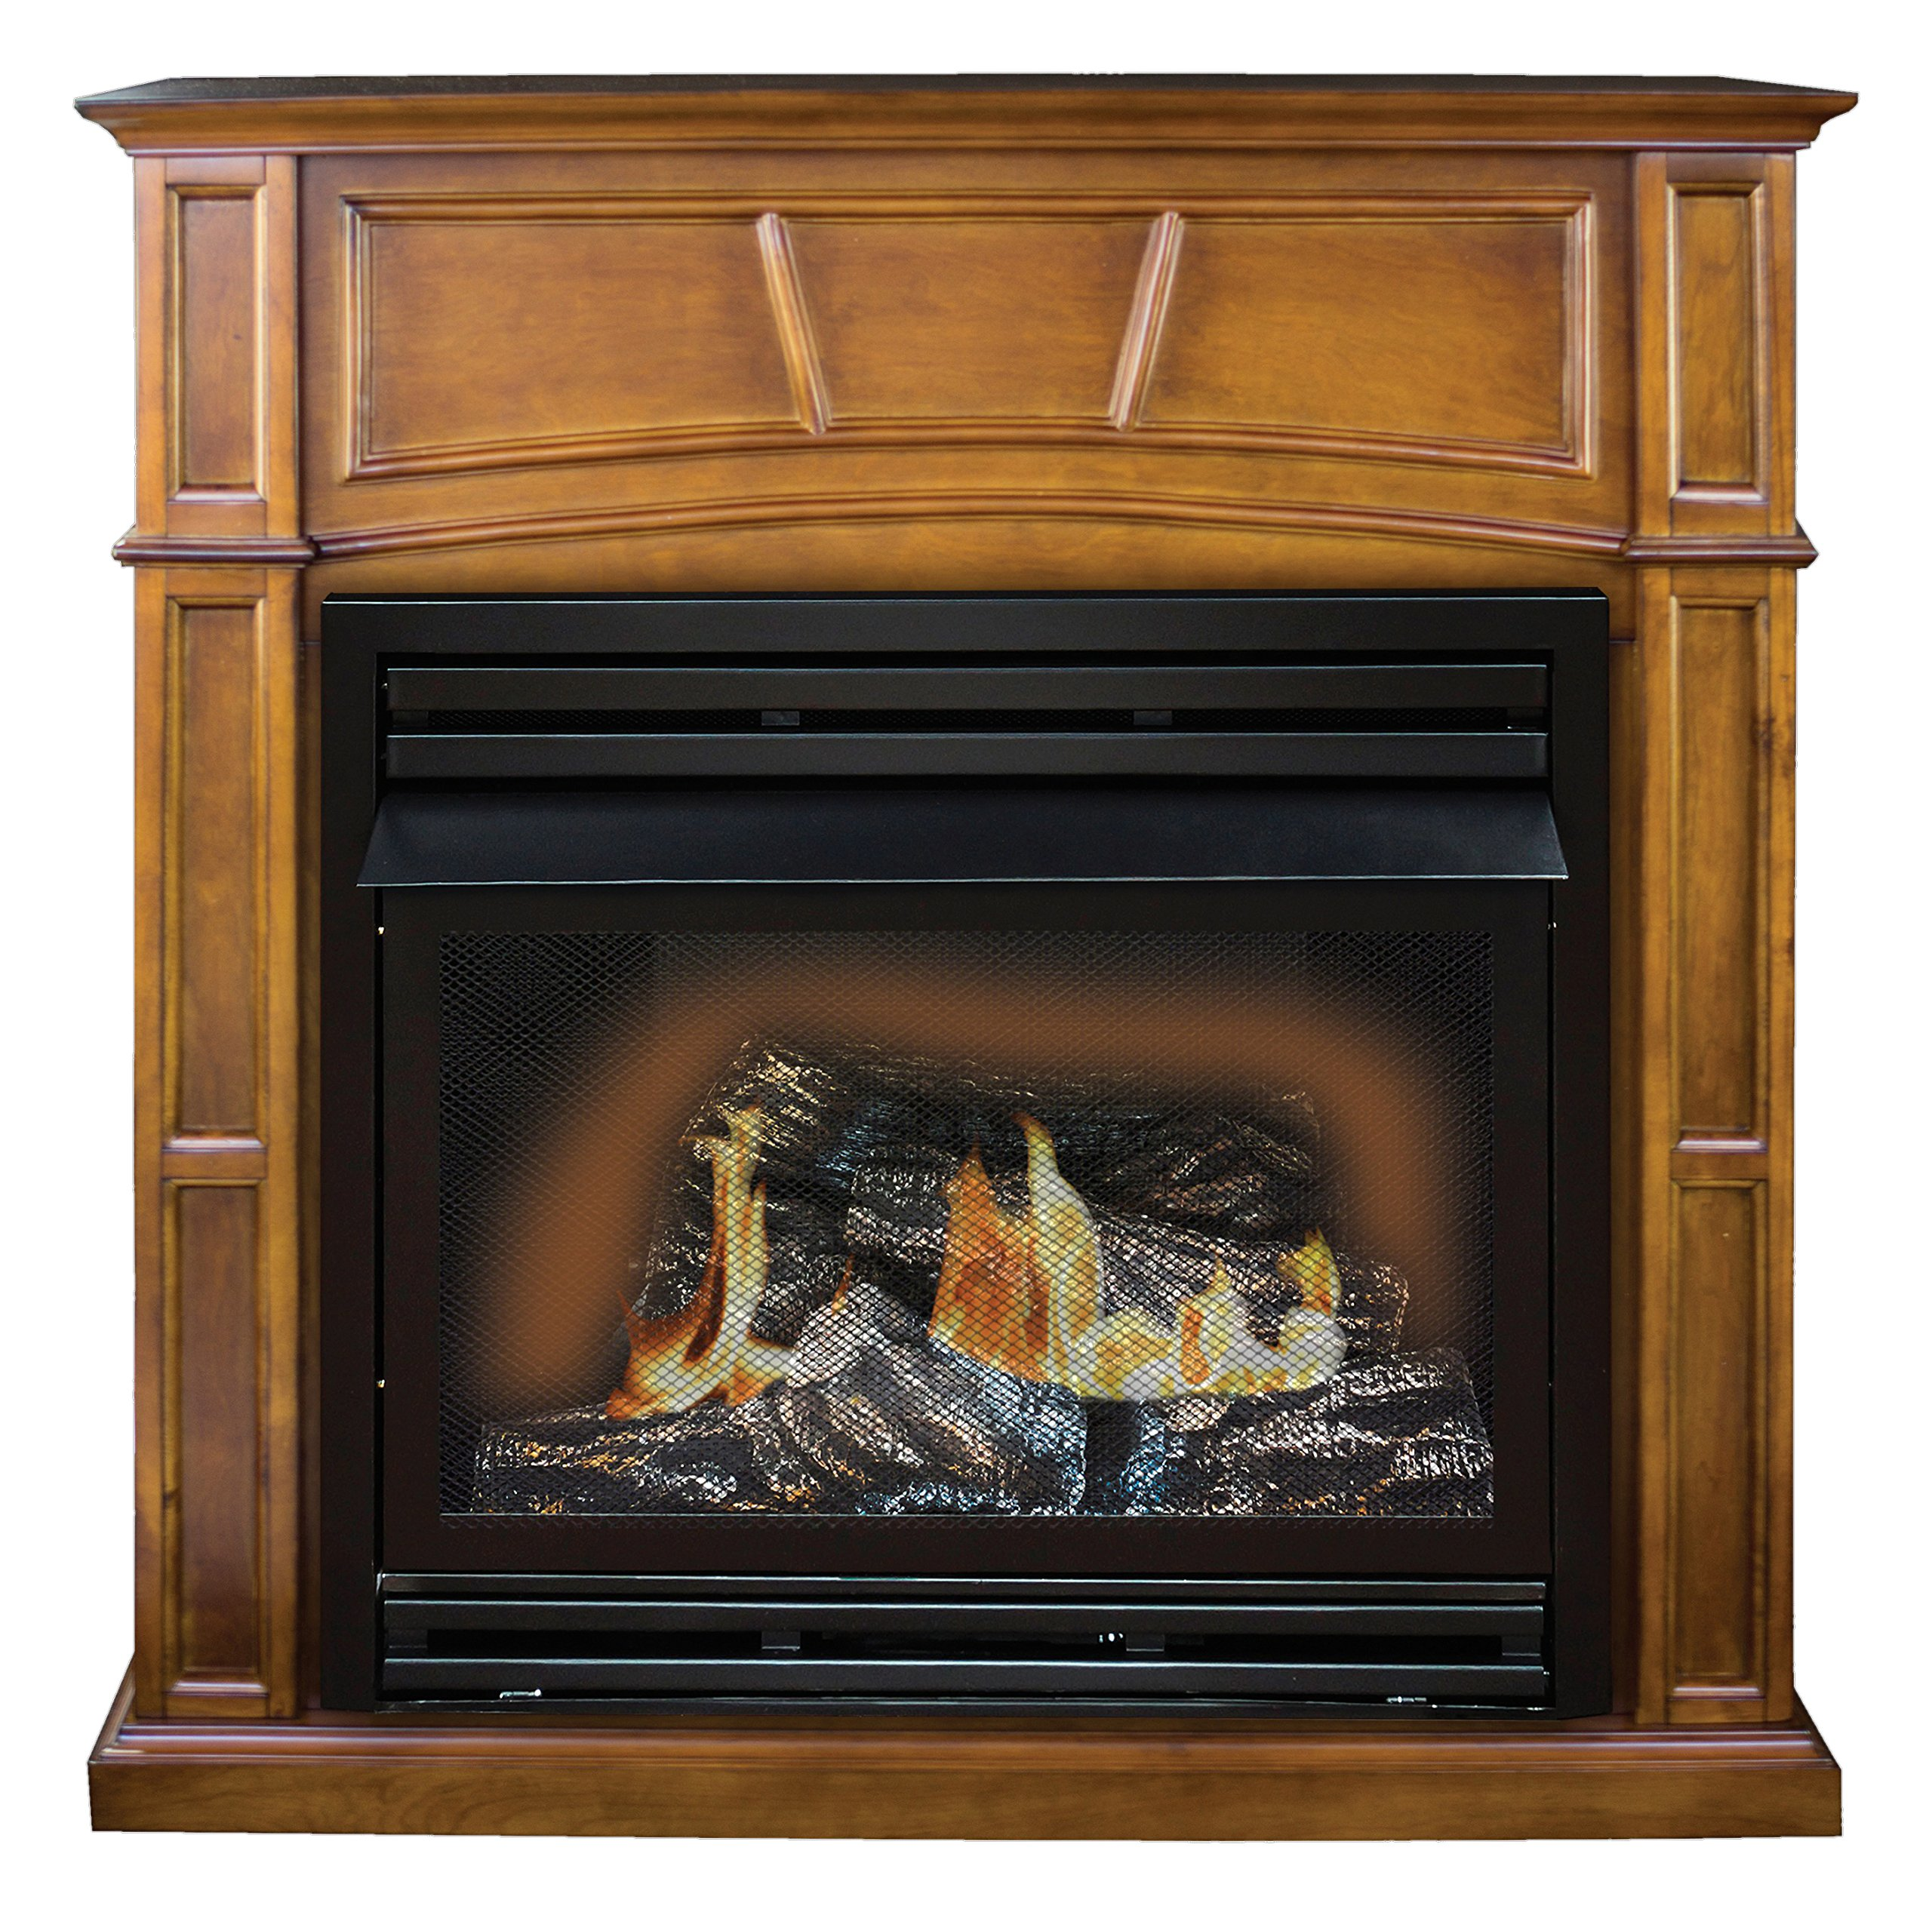 Comfort Glow GFD3280R The The Savannah Remote Controlled Vent Free Gas Fireplace, 30000 Btu by Comfort Glow